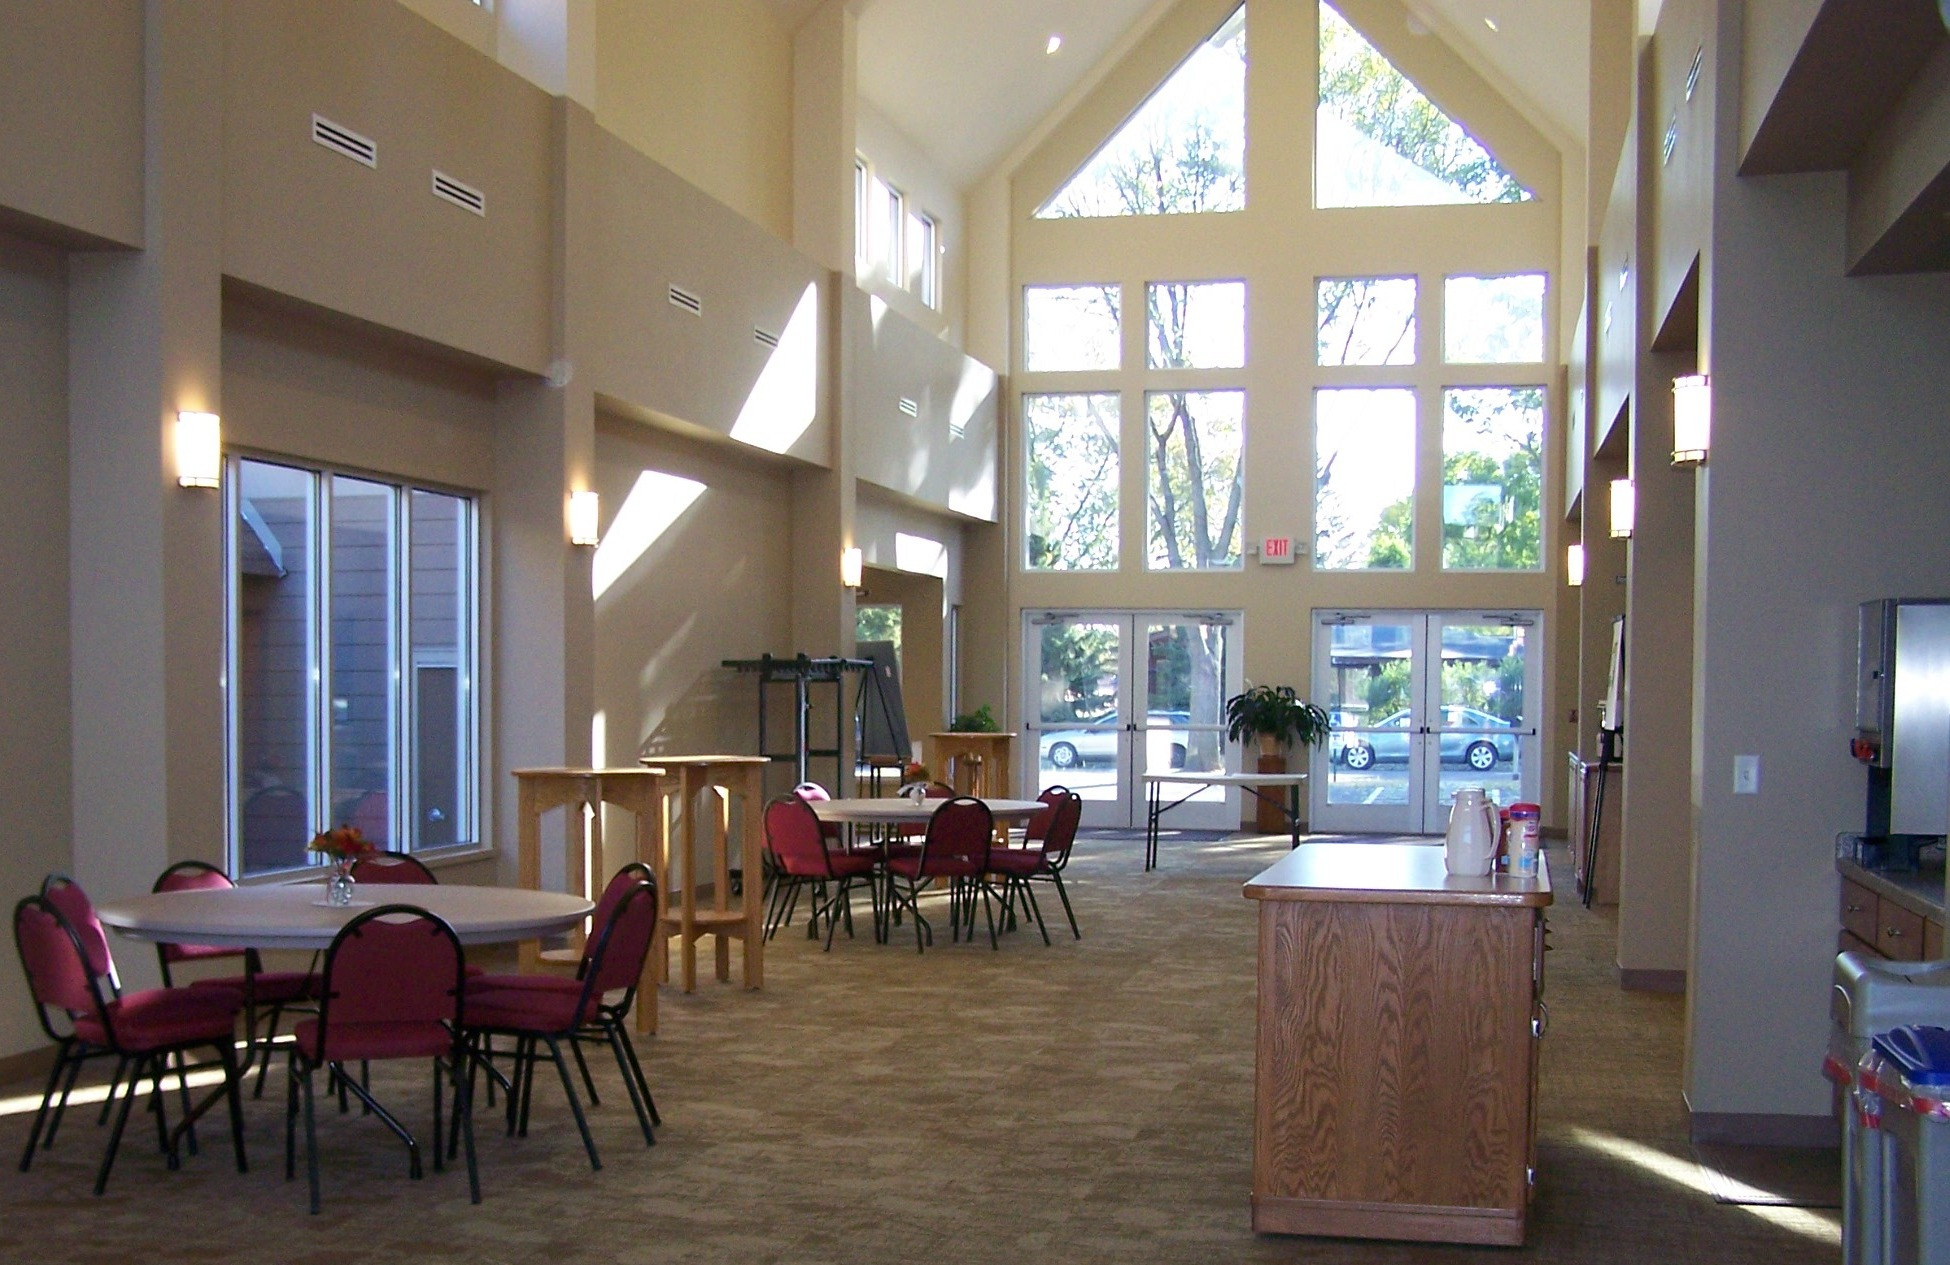 commons gathering area.JPG